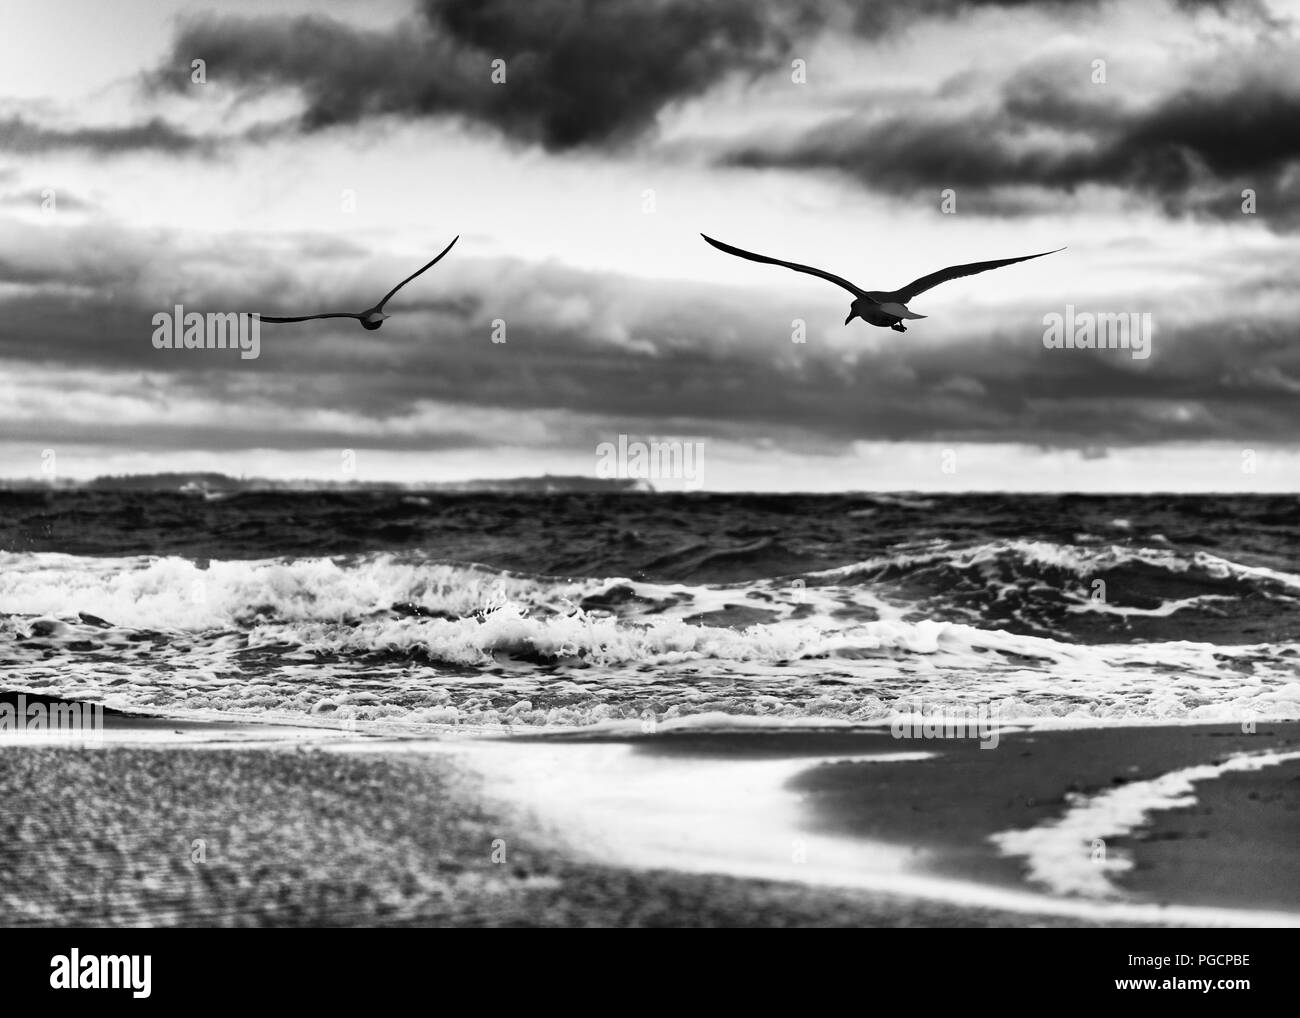 Flat beach with puddles of water, high contrasted sky, in the foreground 2 flying birds - picture in black and white - Location: Germany, Ruegen Islan - Stock Image